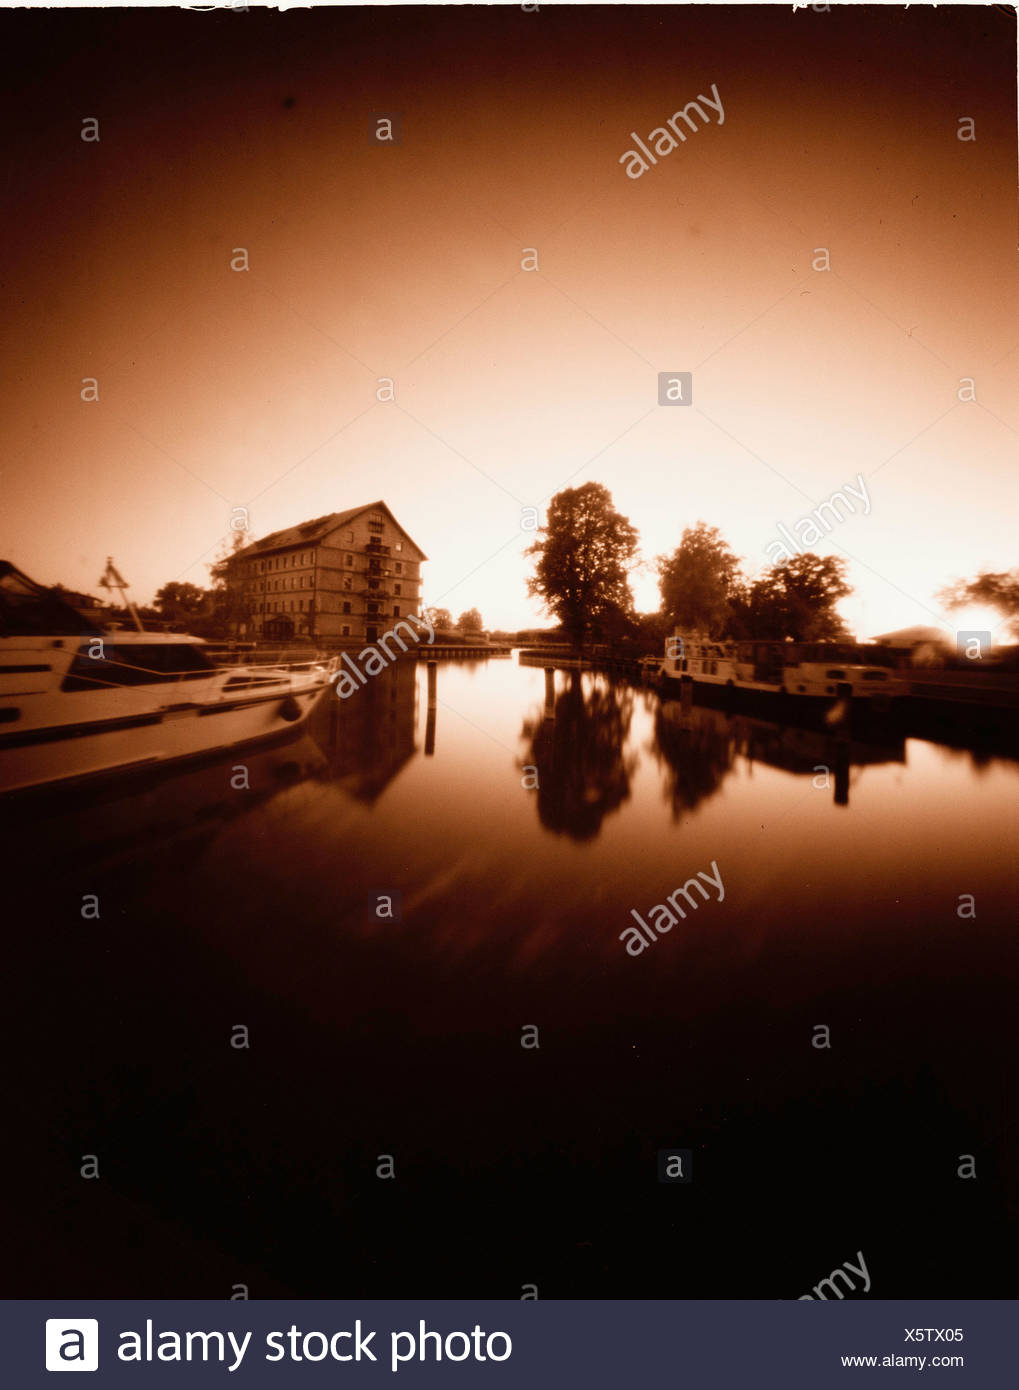 Reflection of trees and houses in lake, Lake Muritz, Mecklenburg Western Pomerania, Germany Stock Photo